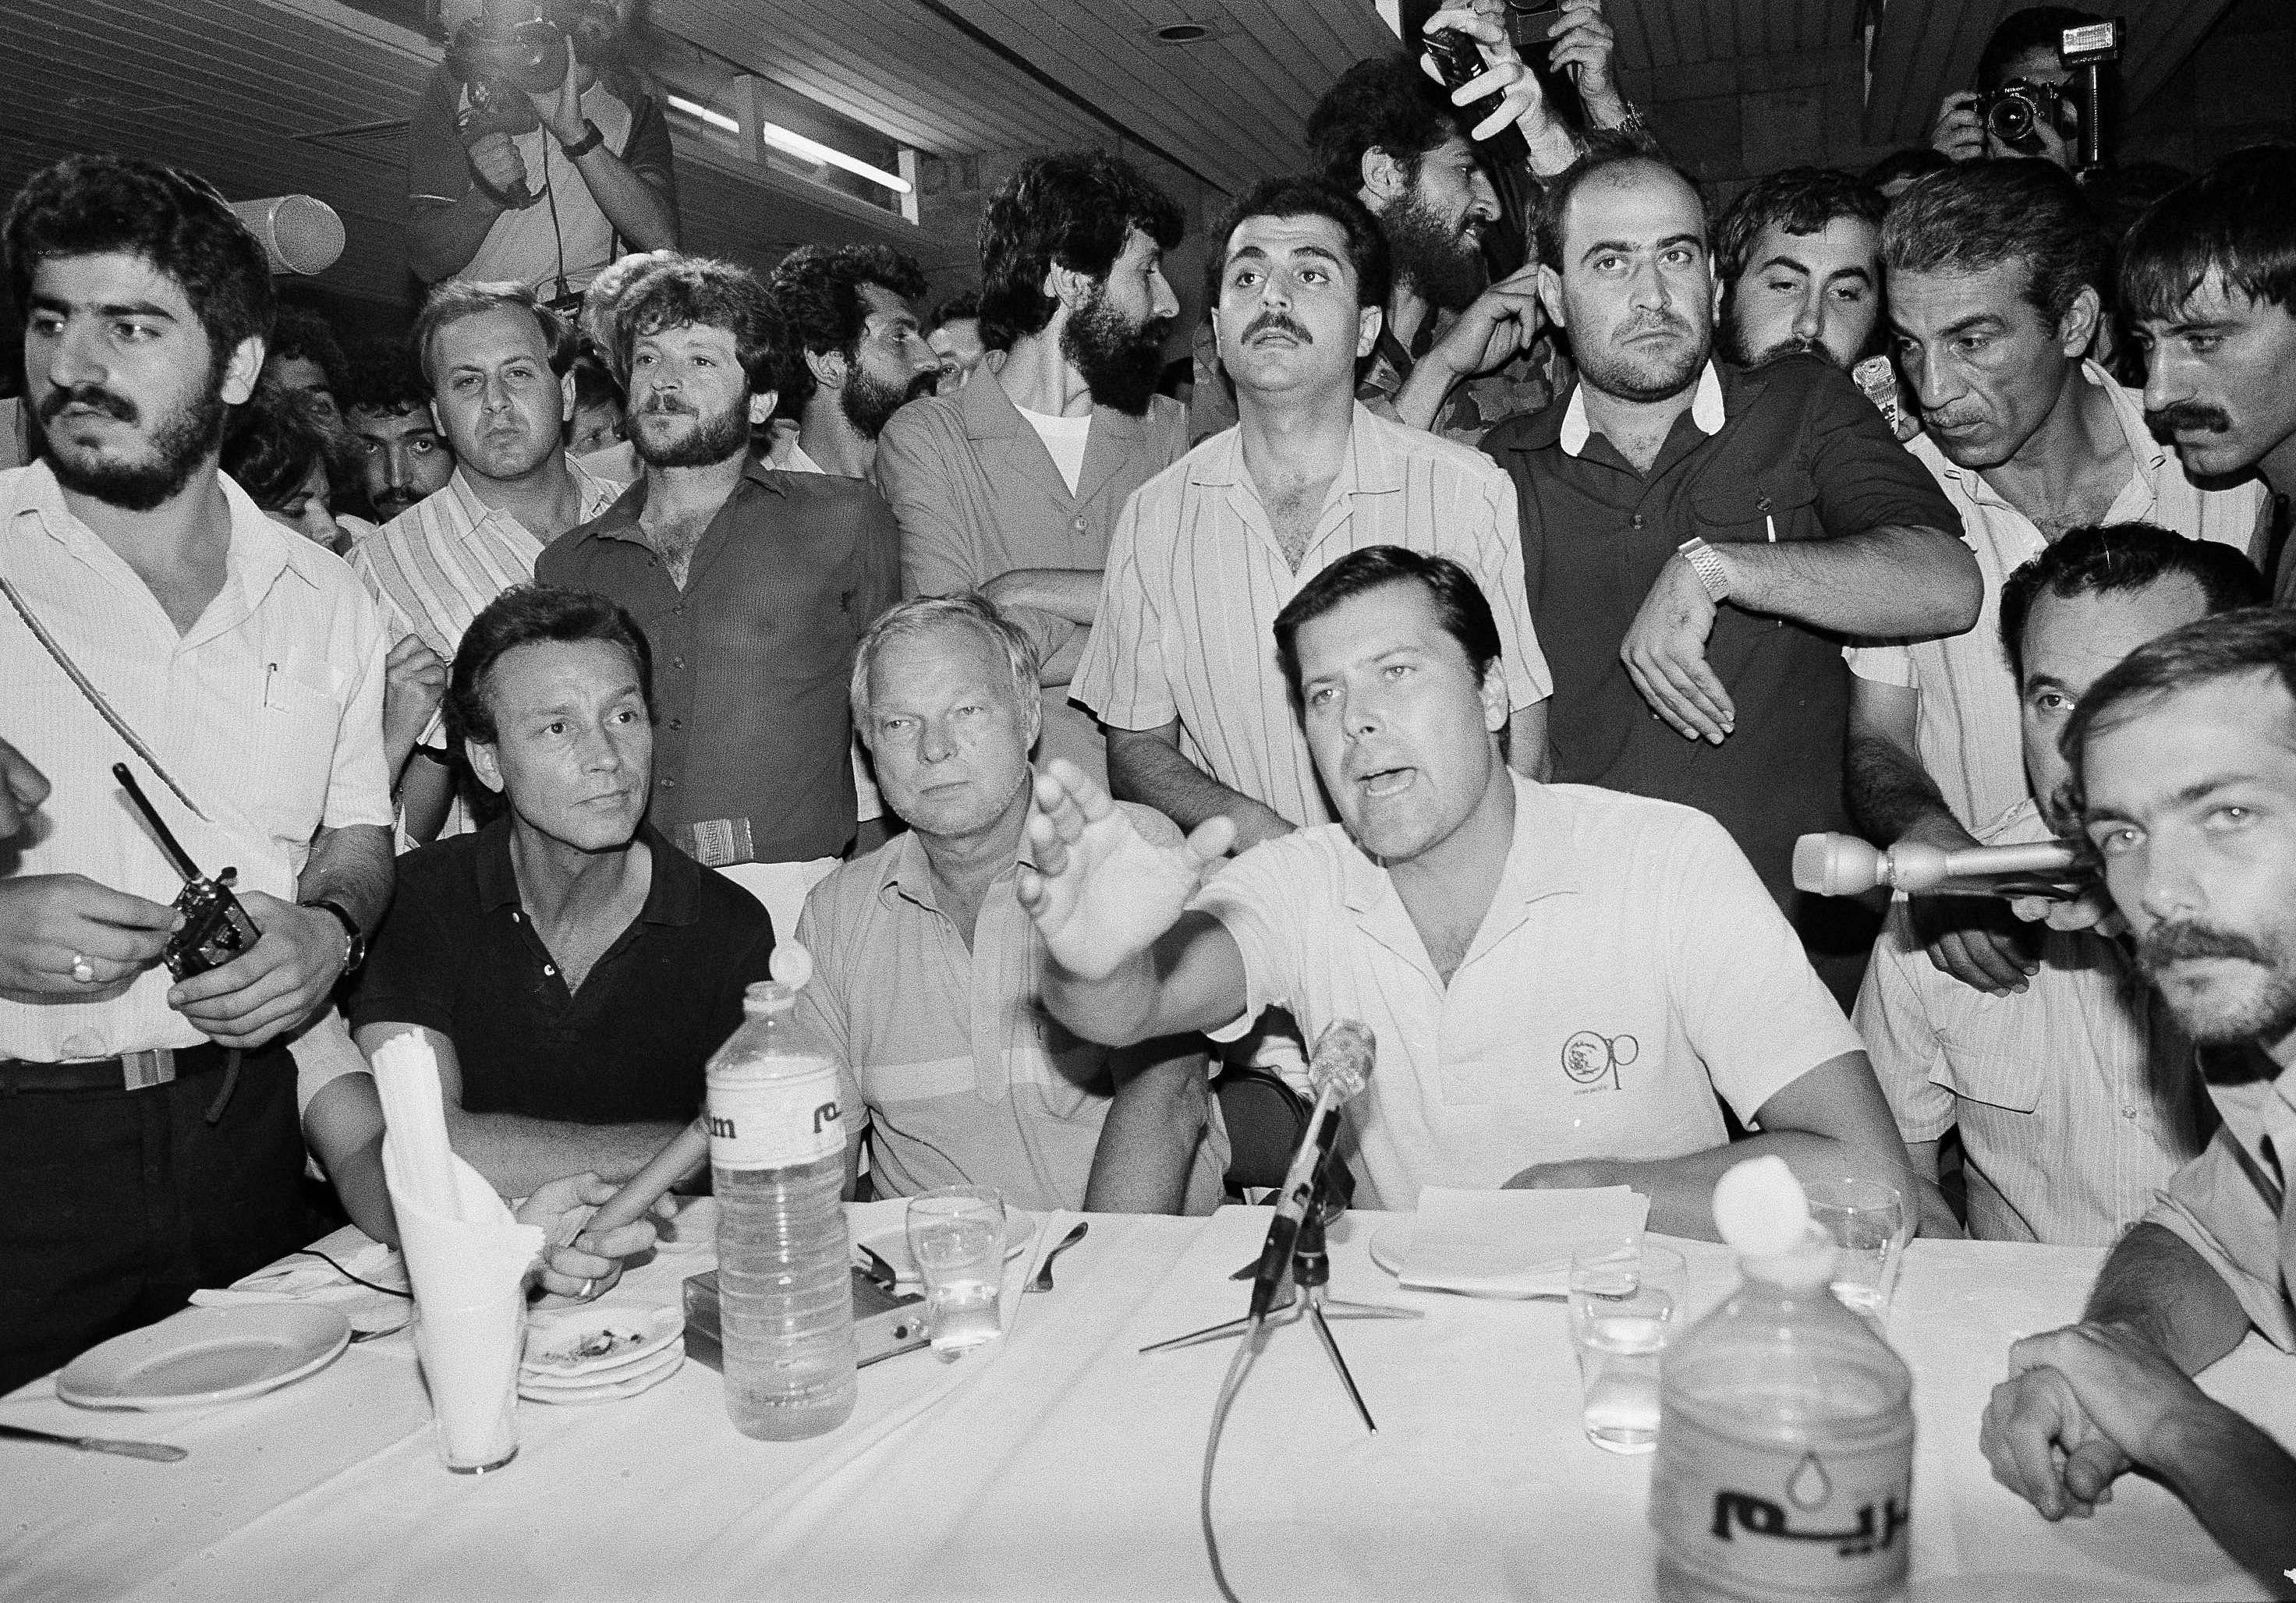 Hostage Allyn Conwell, 39, of Houston, Texas, waves his hand and yells as he replies to reporters' questions during a news conference at Beirut International Airport June 20, 1985. Journalists were pushed and shoved by Shiite Muslim AMAL Militiamen away from the five hostages. The Americans were among 40 hostages taken during the hijacking of TWA flight 847 from Athens to Rome. Sitting to Conwell's right is Peter Hill, 57, of Hoffman Estates, Thomas Cullins, 42, Burlington, Vermont. At his left is Arthur Toga, 33, of St. Louis.